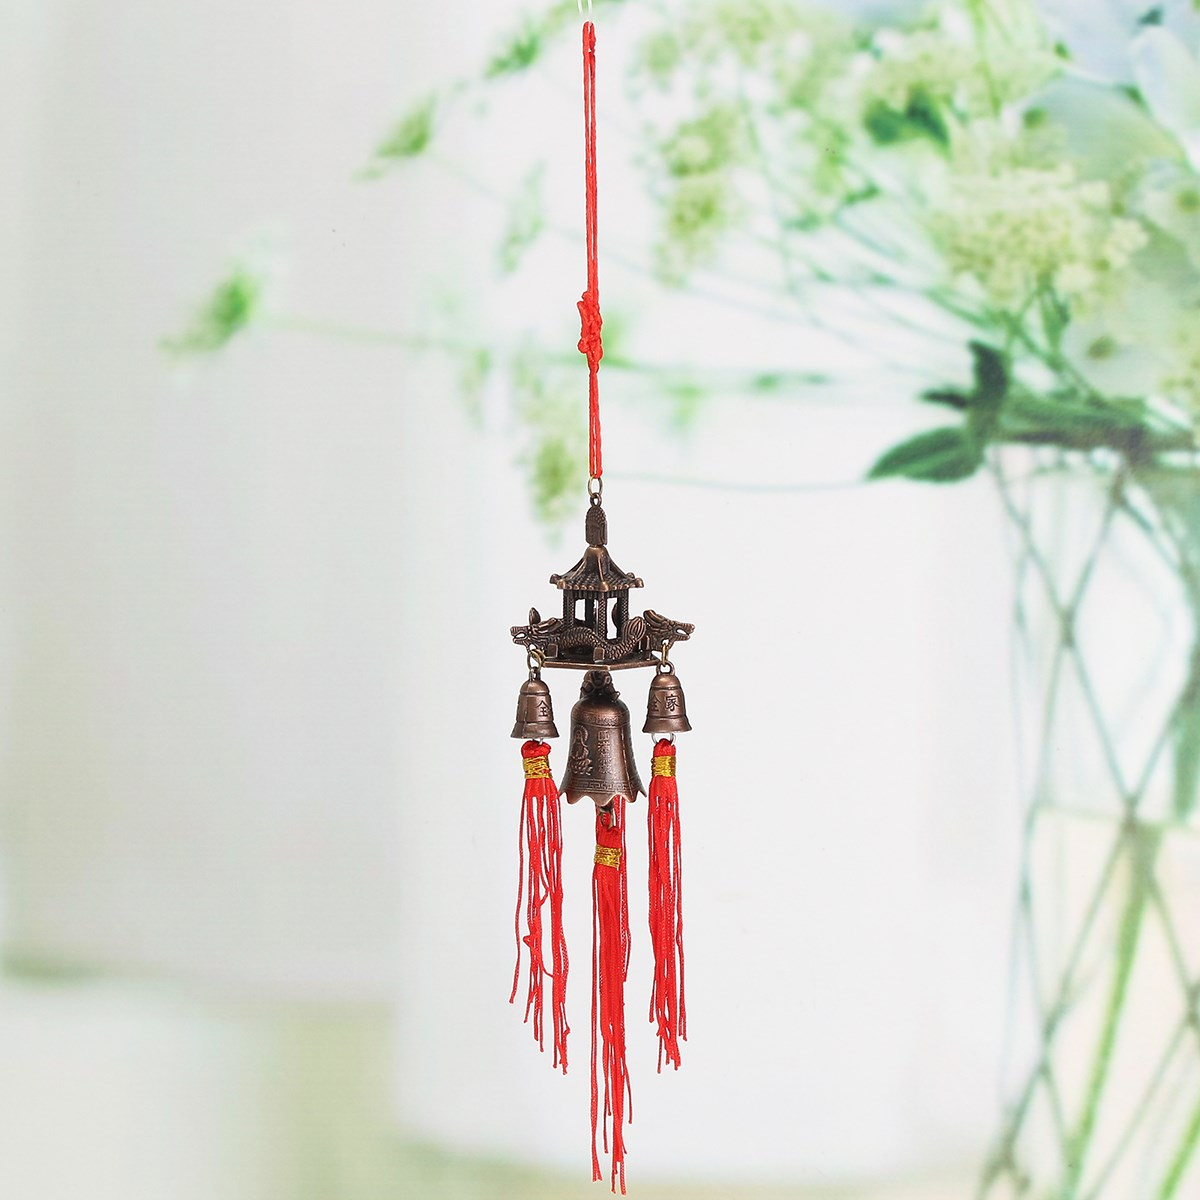 Hanging wind chimes temple roof bell buddhism lucky feng shui hanging wind chimes temple roof bell buddhism lucky feng shui chinese knot blessing good luck home decor symbolism in wind chimes hanging decorations from buycottarizona Choice Image